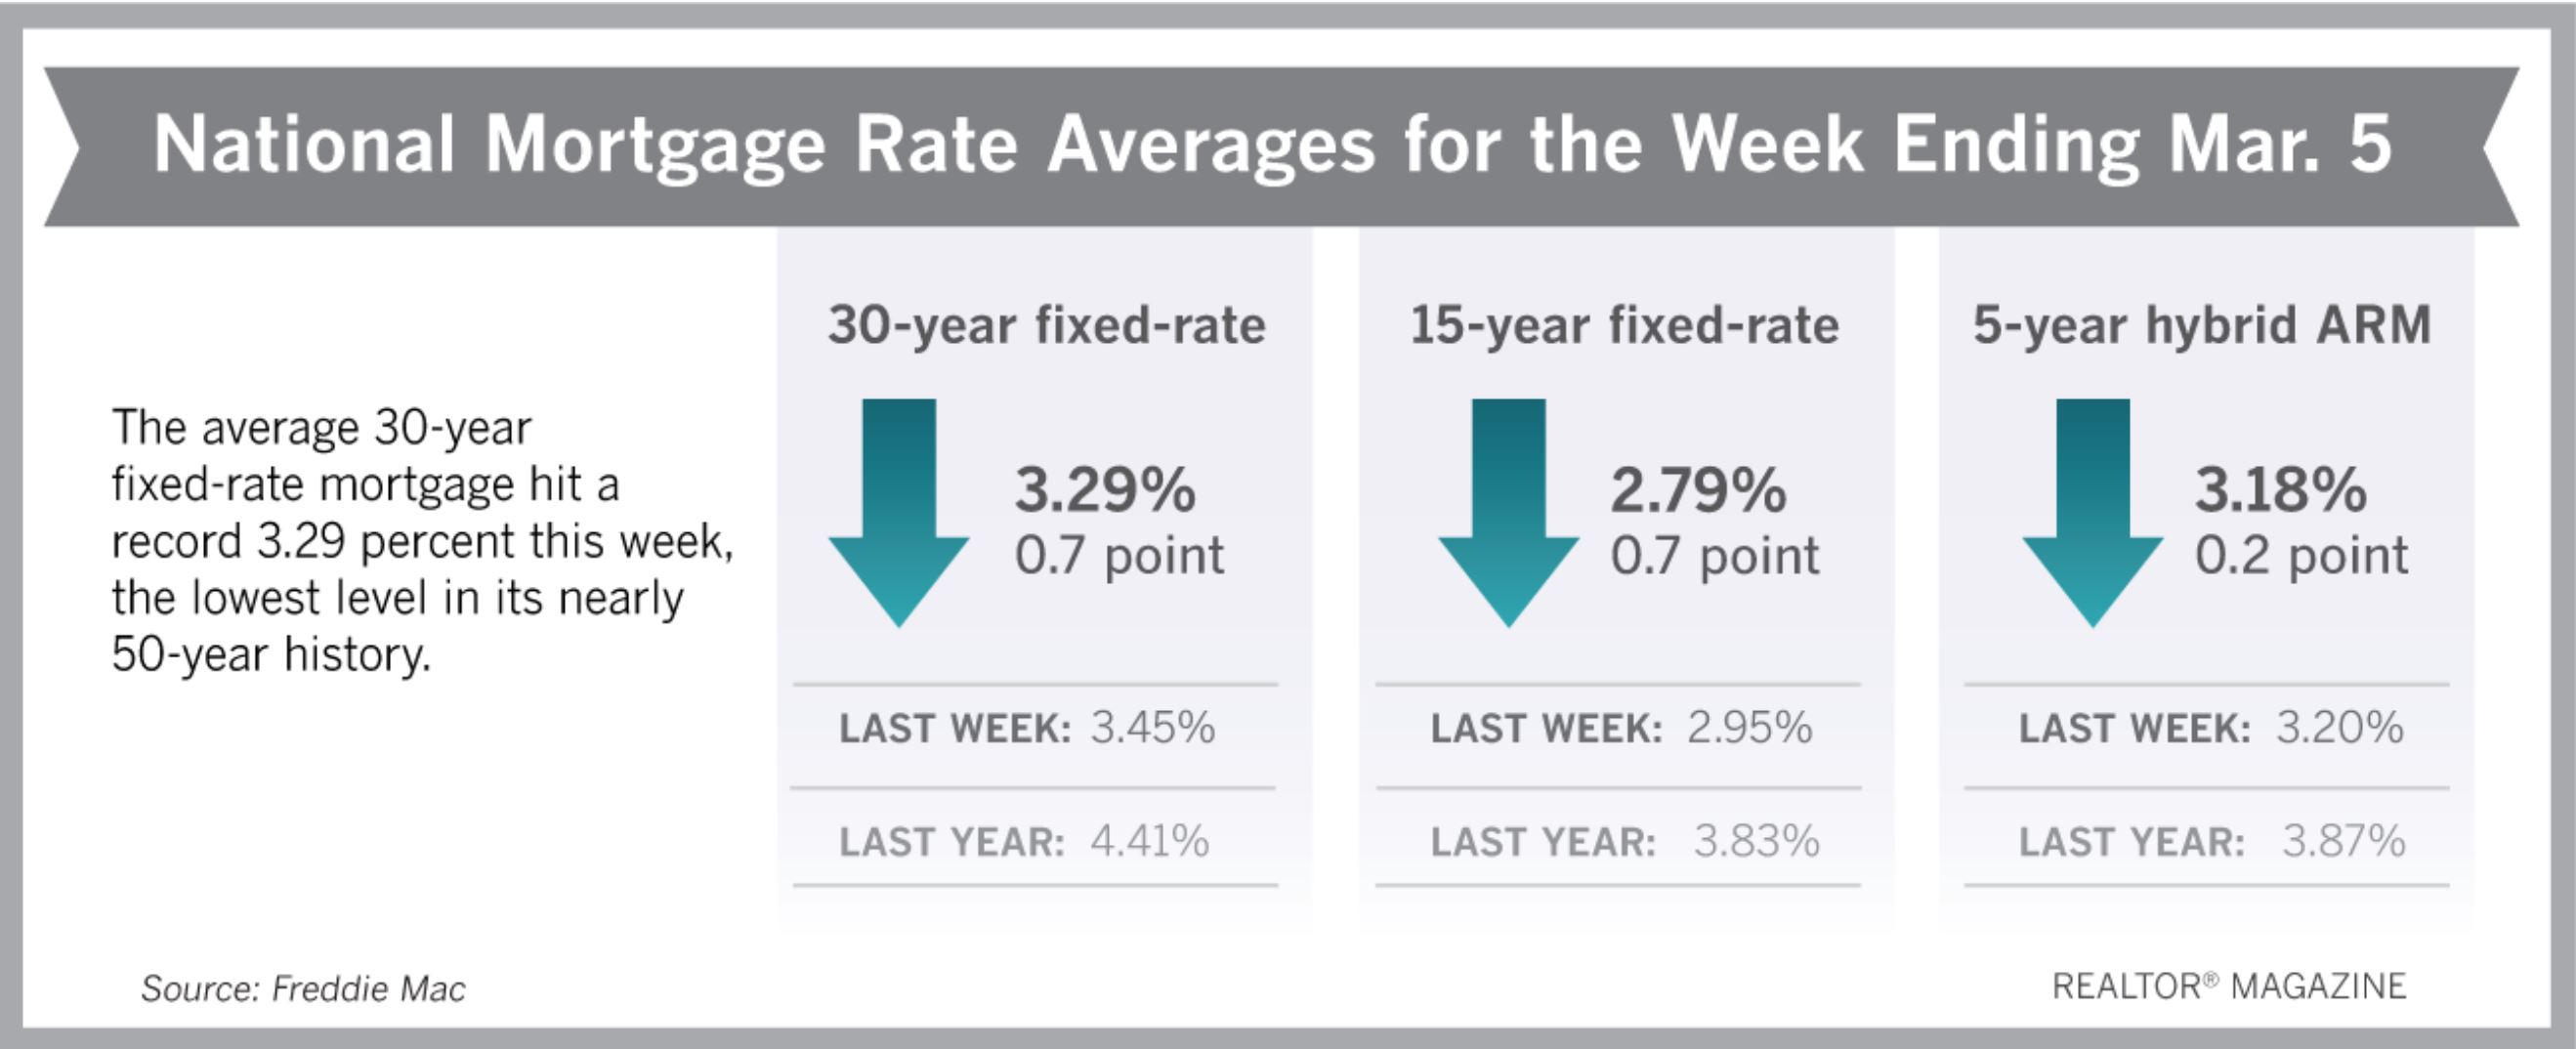 Realtor Magazine 2020 03 07 National Mortgage Rate Week Ending March 5th Hoey Team eXp Realty